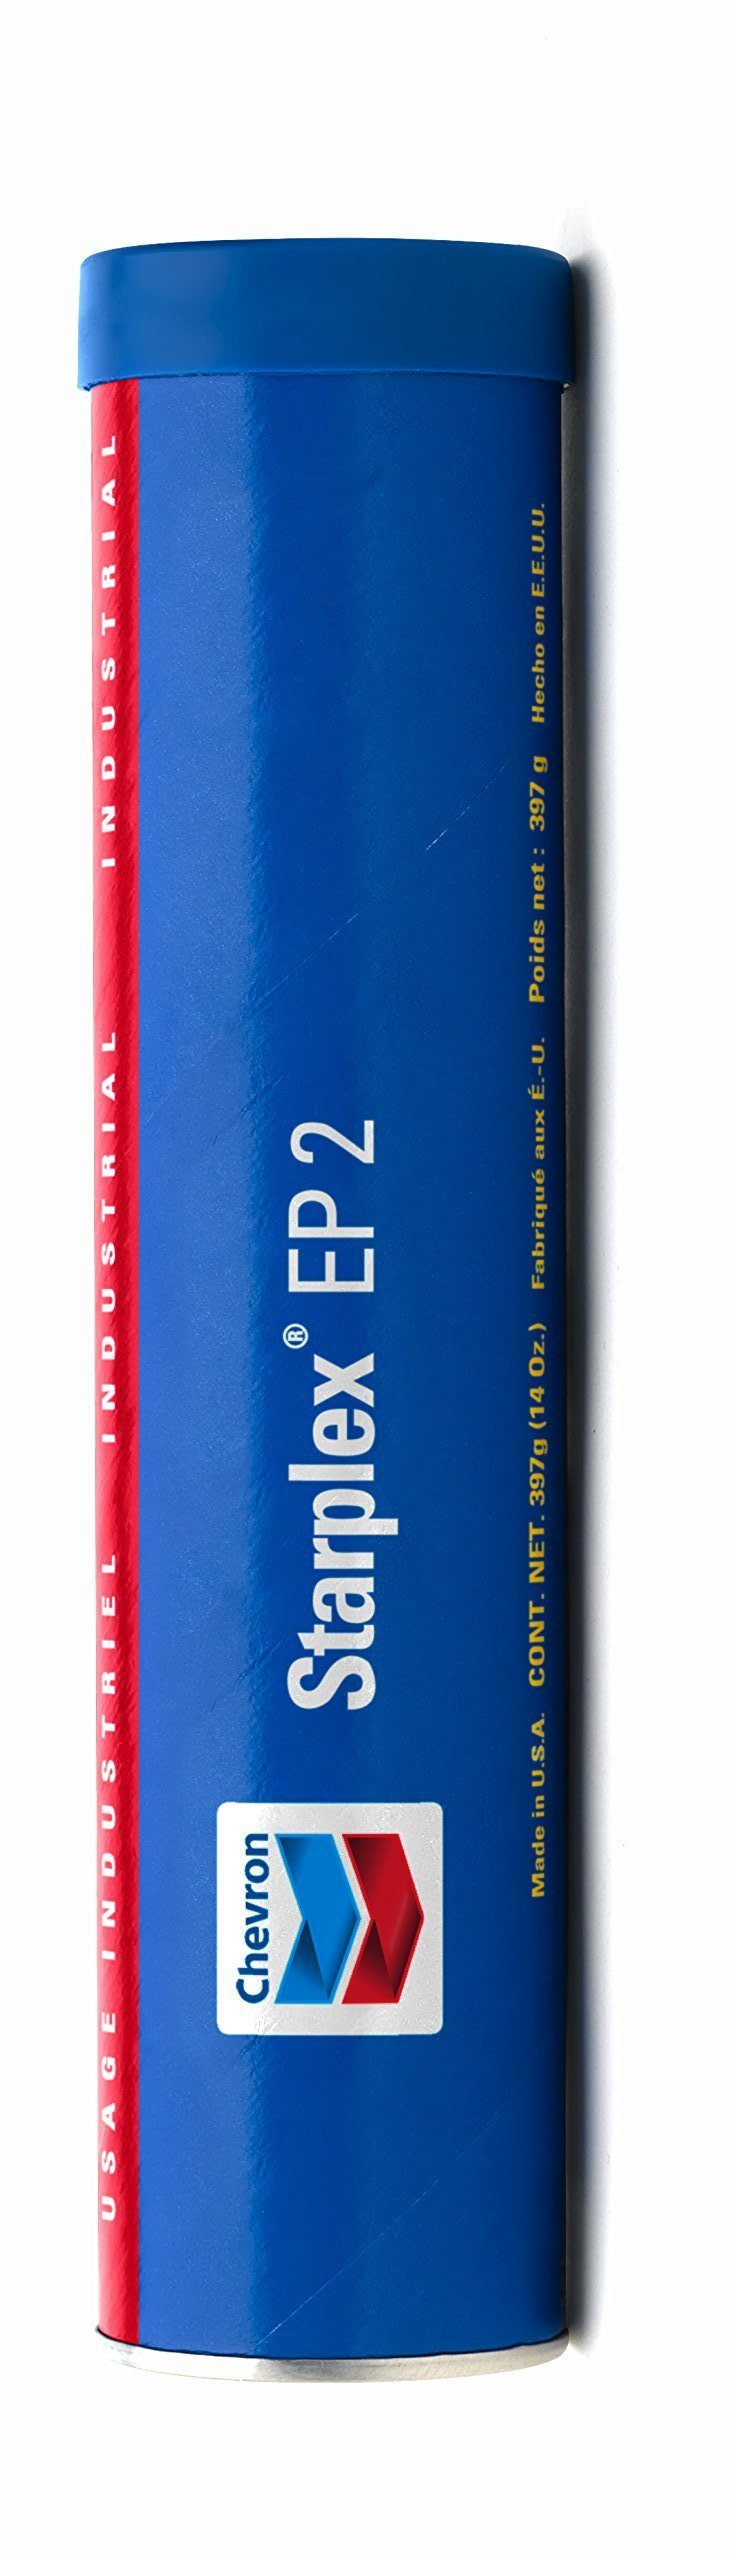 Chevron Starplex EP 2 Lithium Complex Grease | Case of 10 Tubes